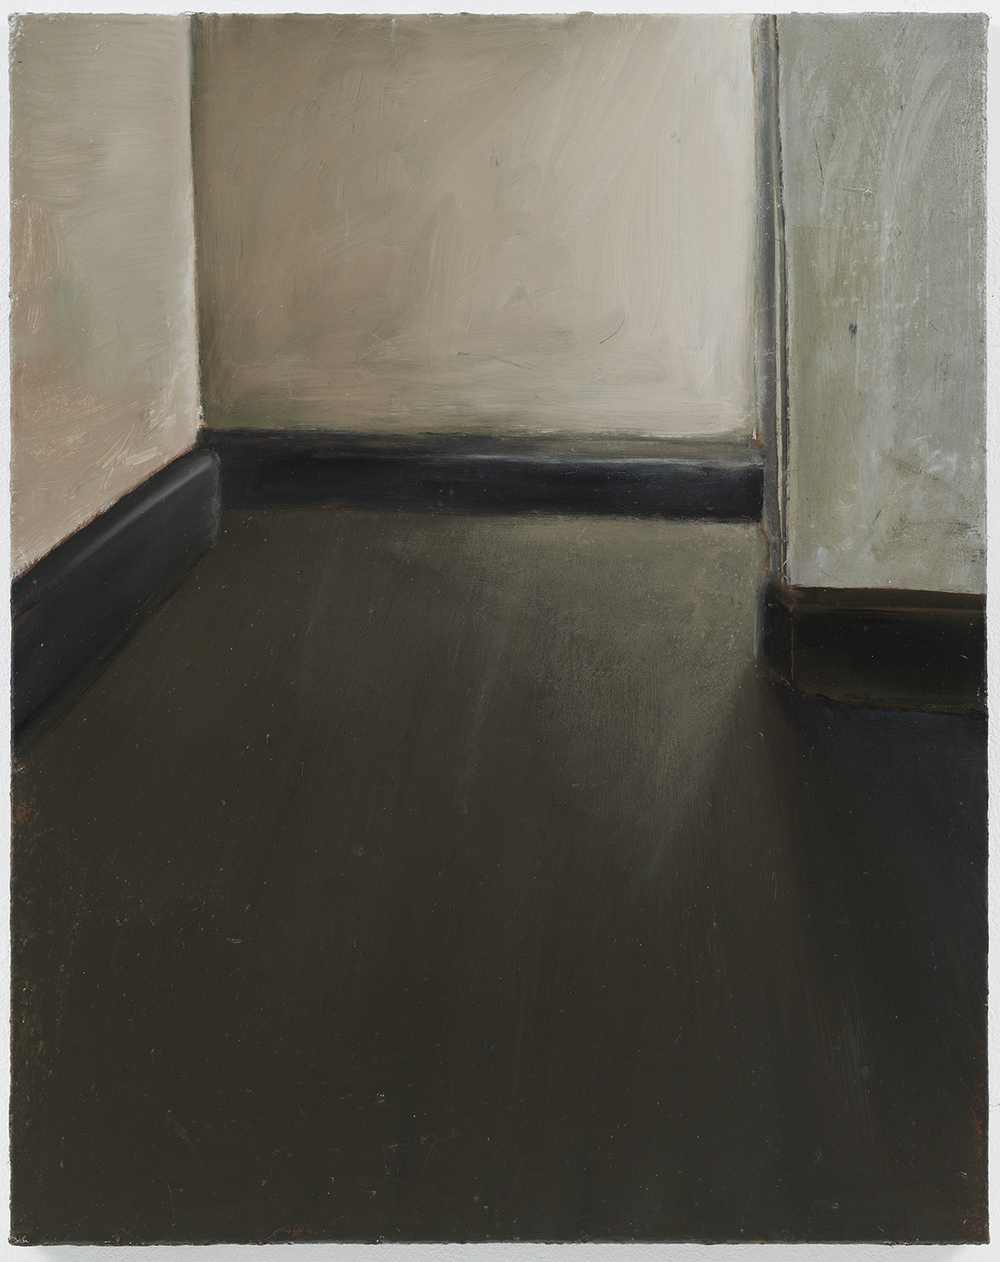 Cristof Yvorè,  Untitled,  009, oil on canvas, 36 1/4 x 29 inches